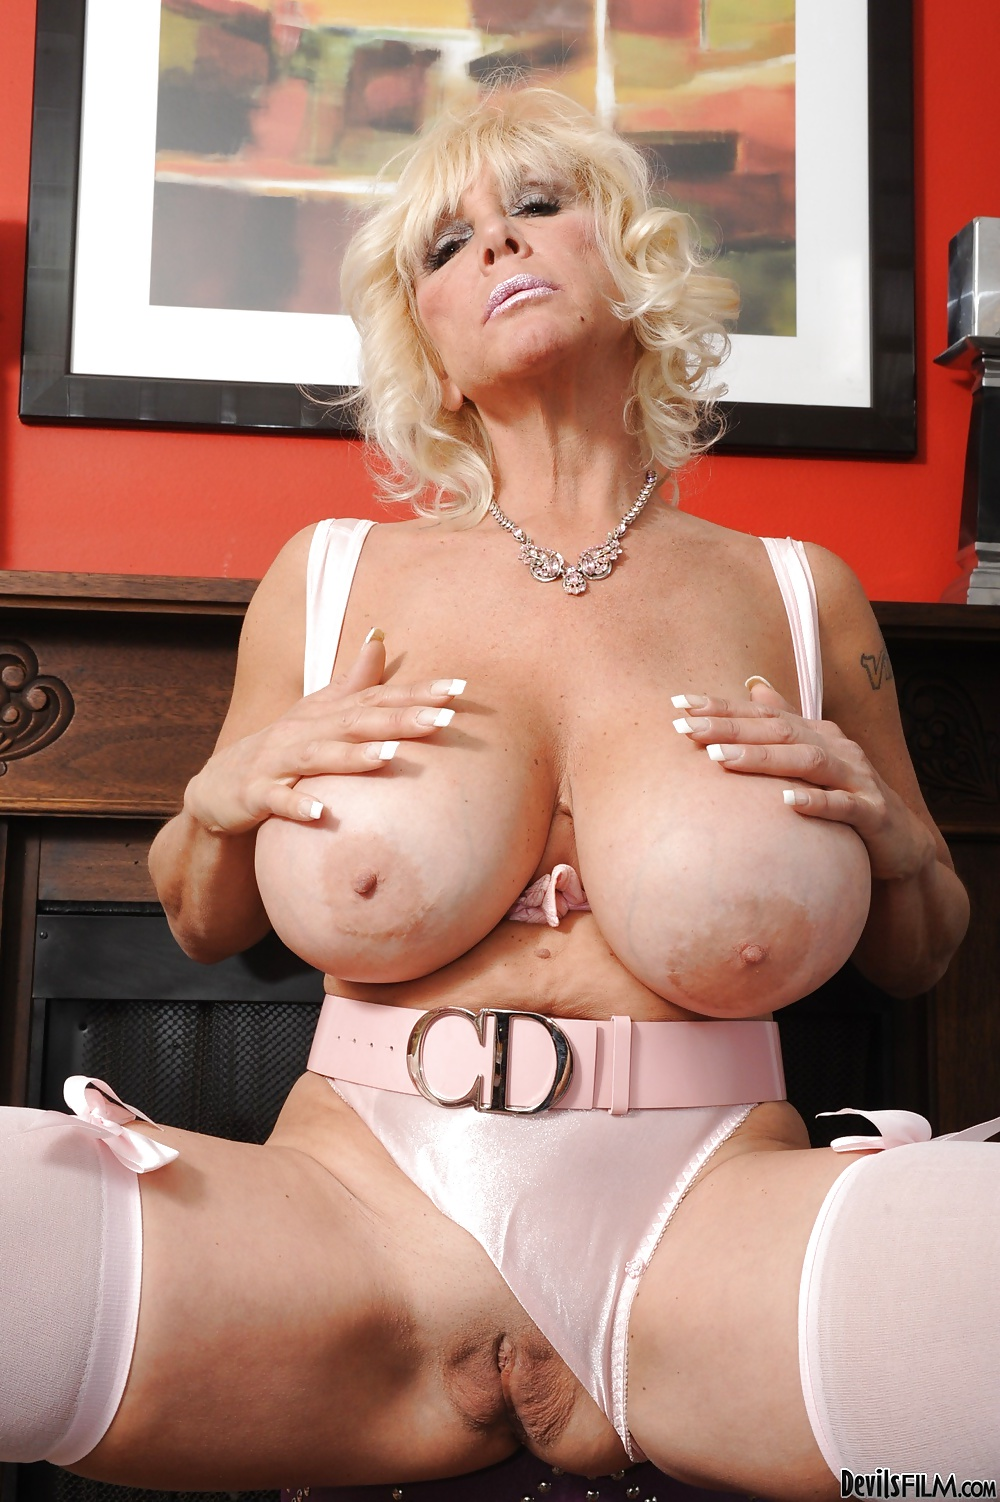 Granny Shelly Big Tits - 18 Fotos - Xhamstercom-3832